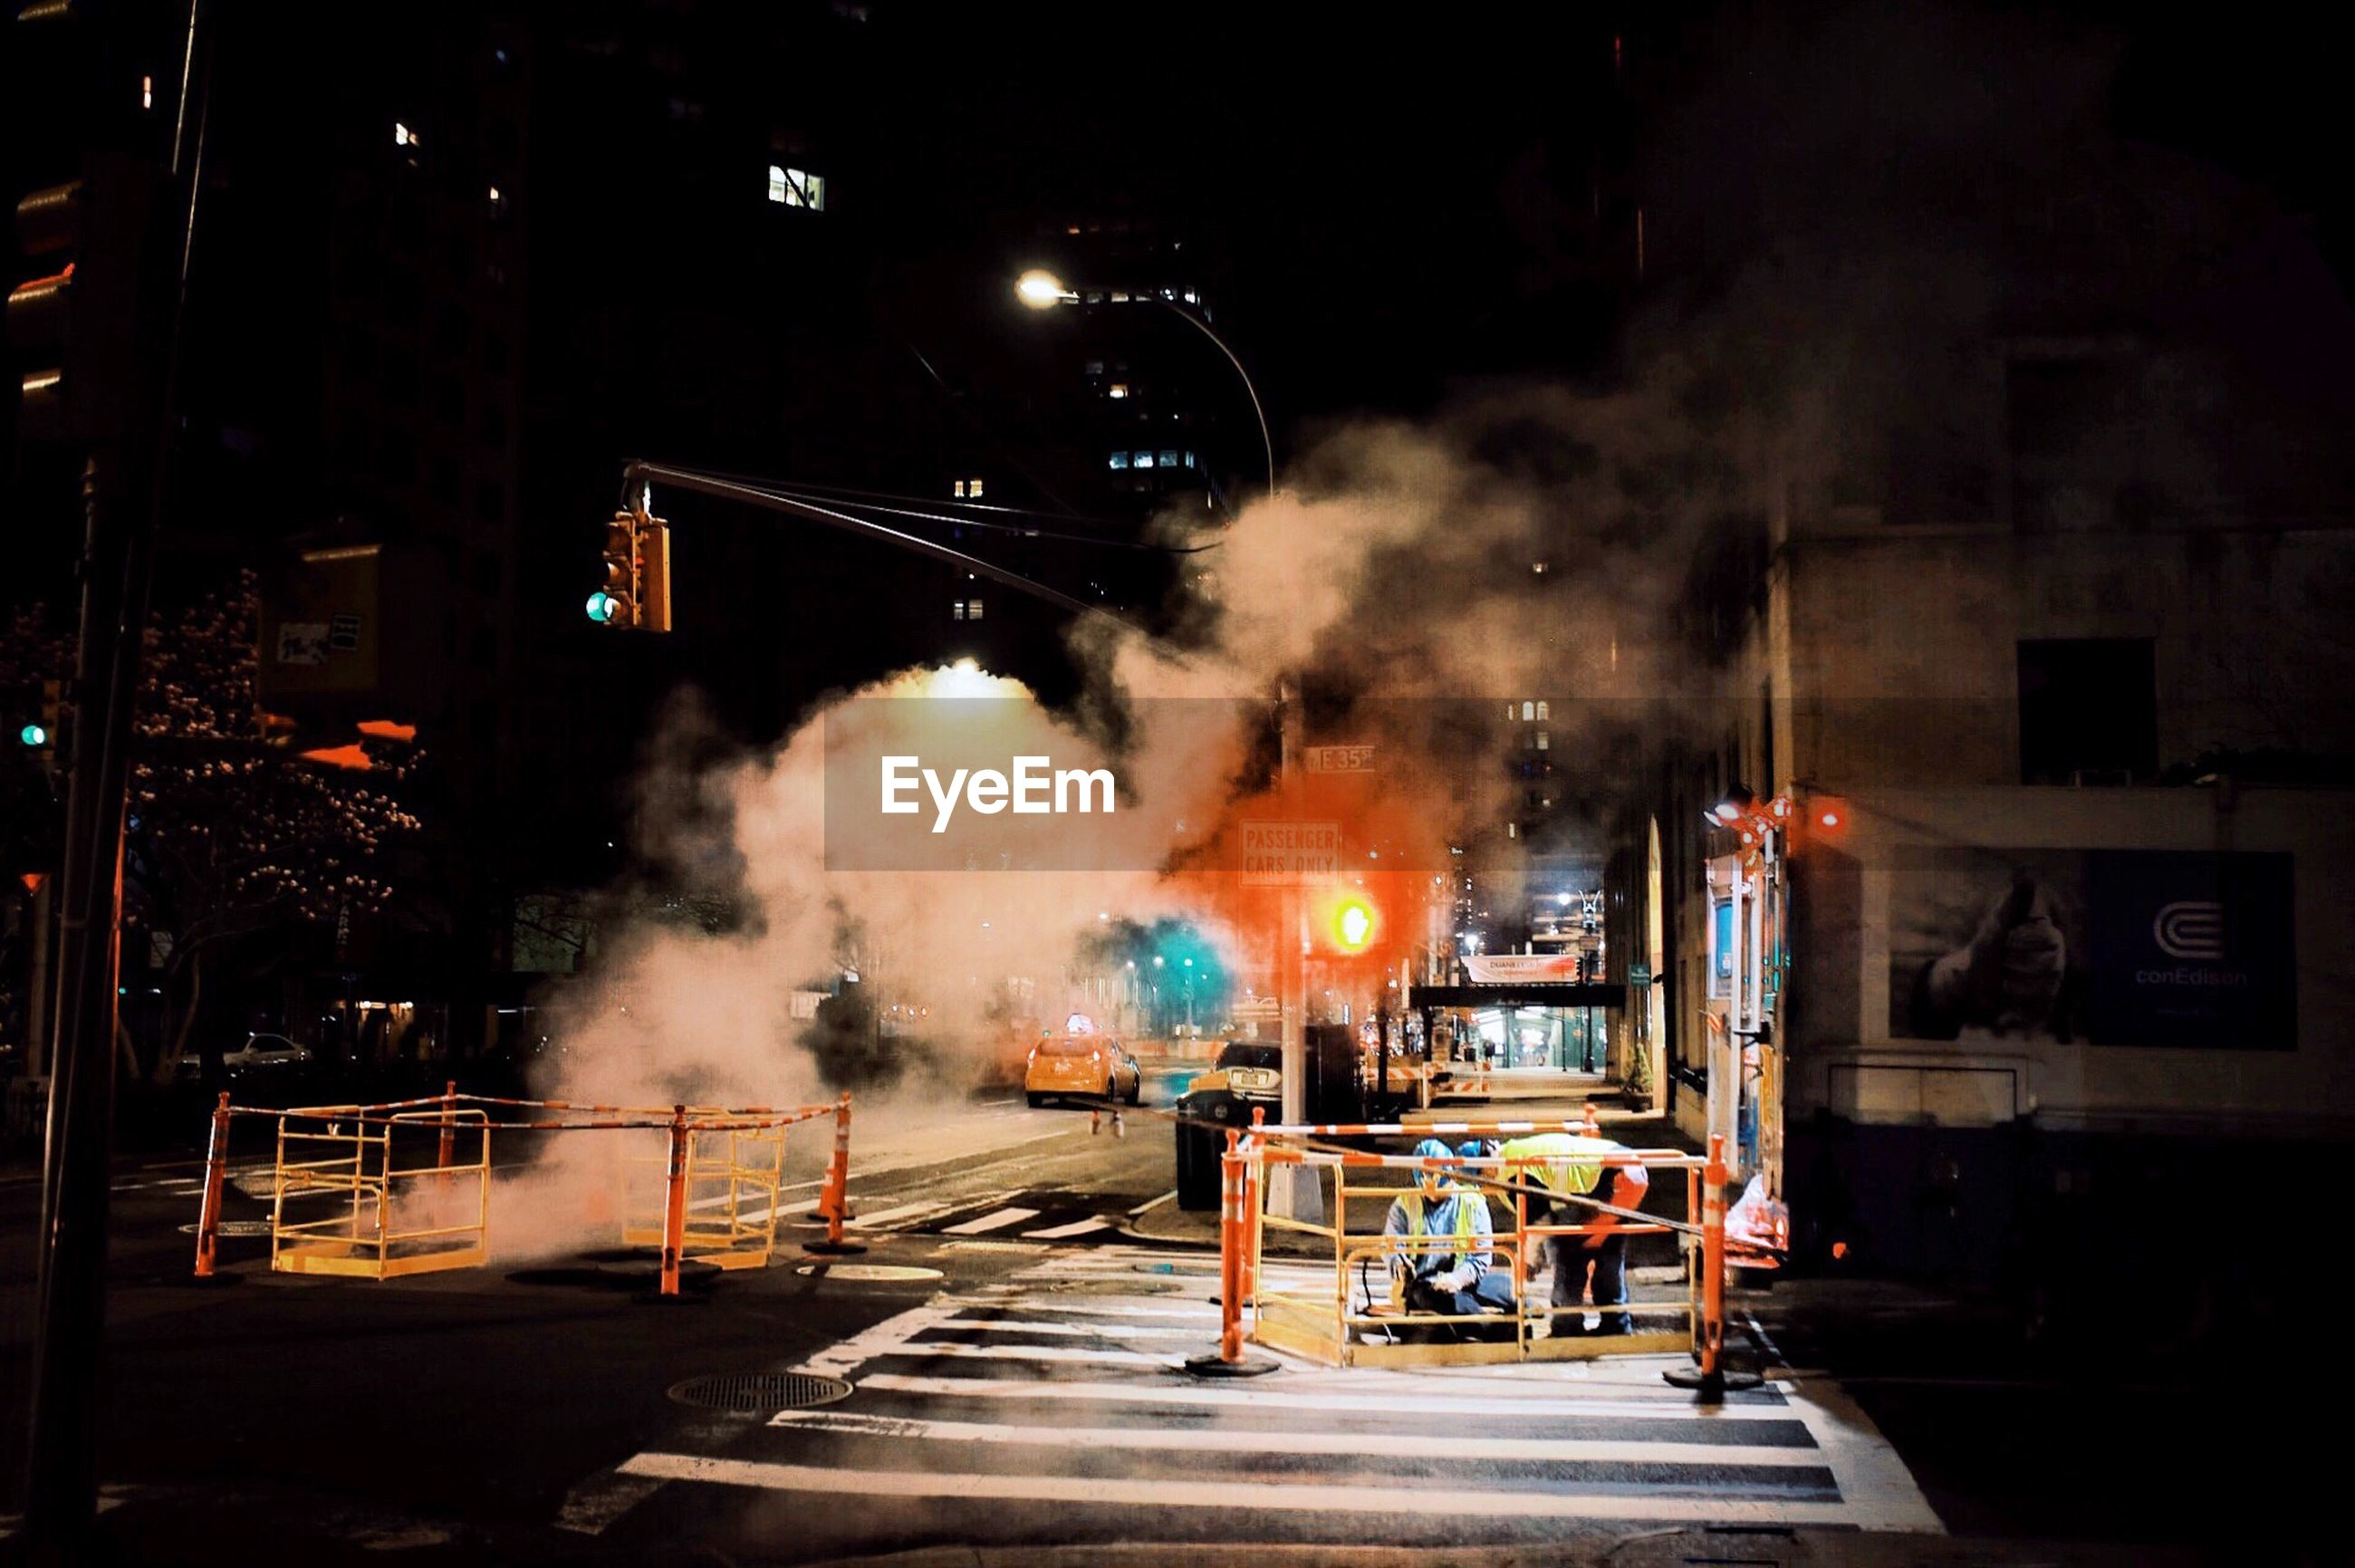 night, architecture, illuminated, building exterior, smoke - physical structure, transportation, city, street, mode of transportation, built structure, sign, no people, outdoors, motion, nature, land vehicle, road, motor vehicle, car, industry, pollution, air pollution